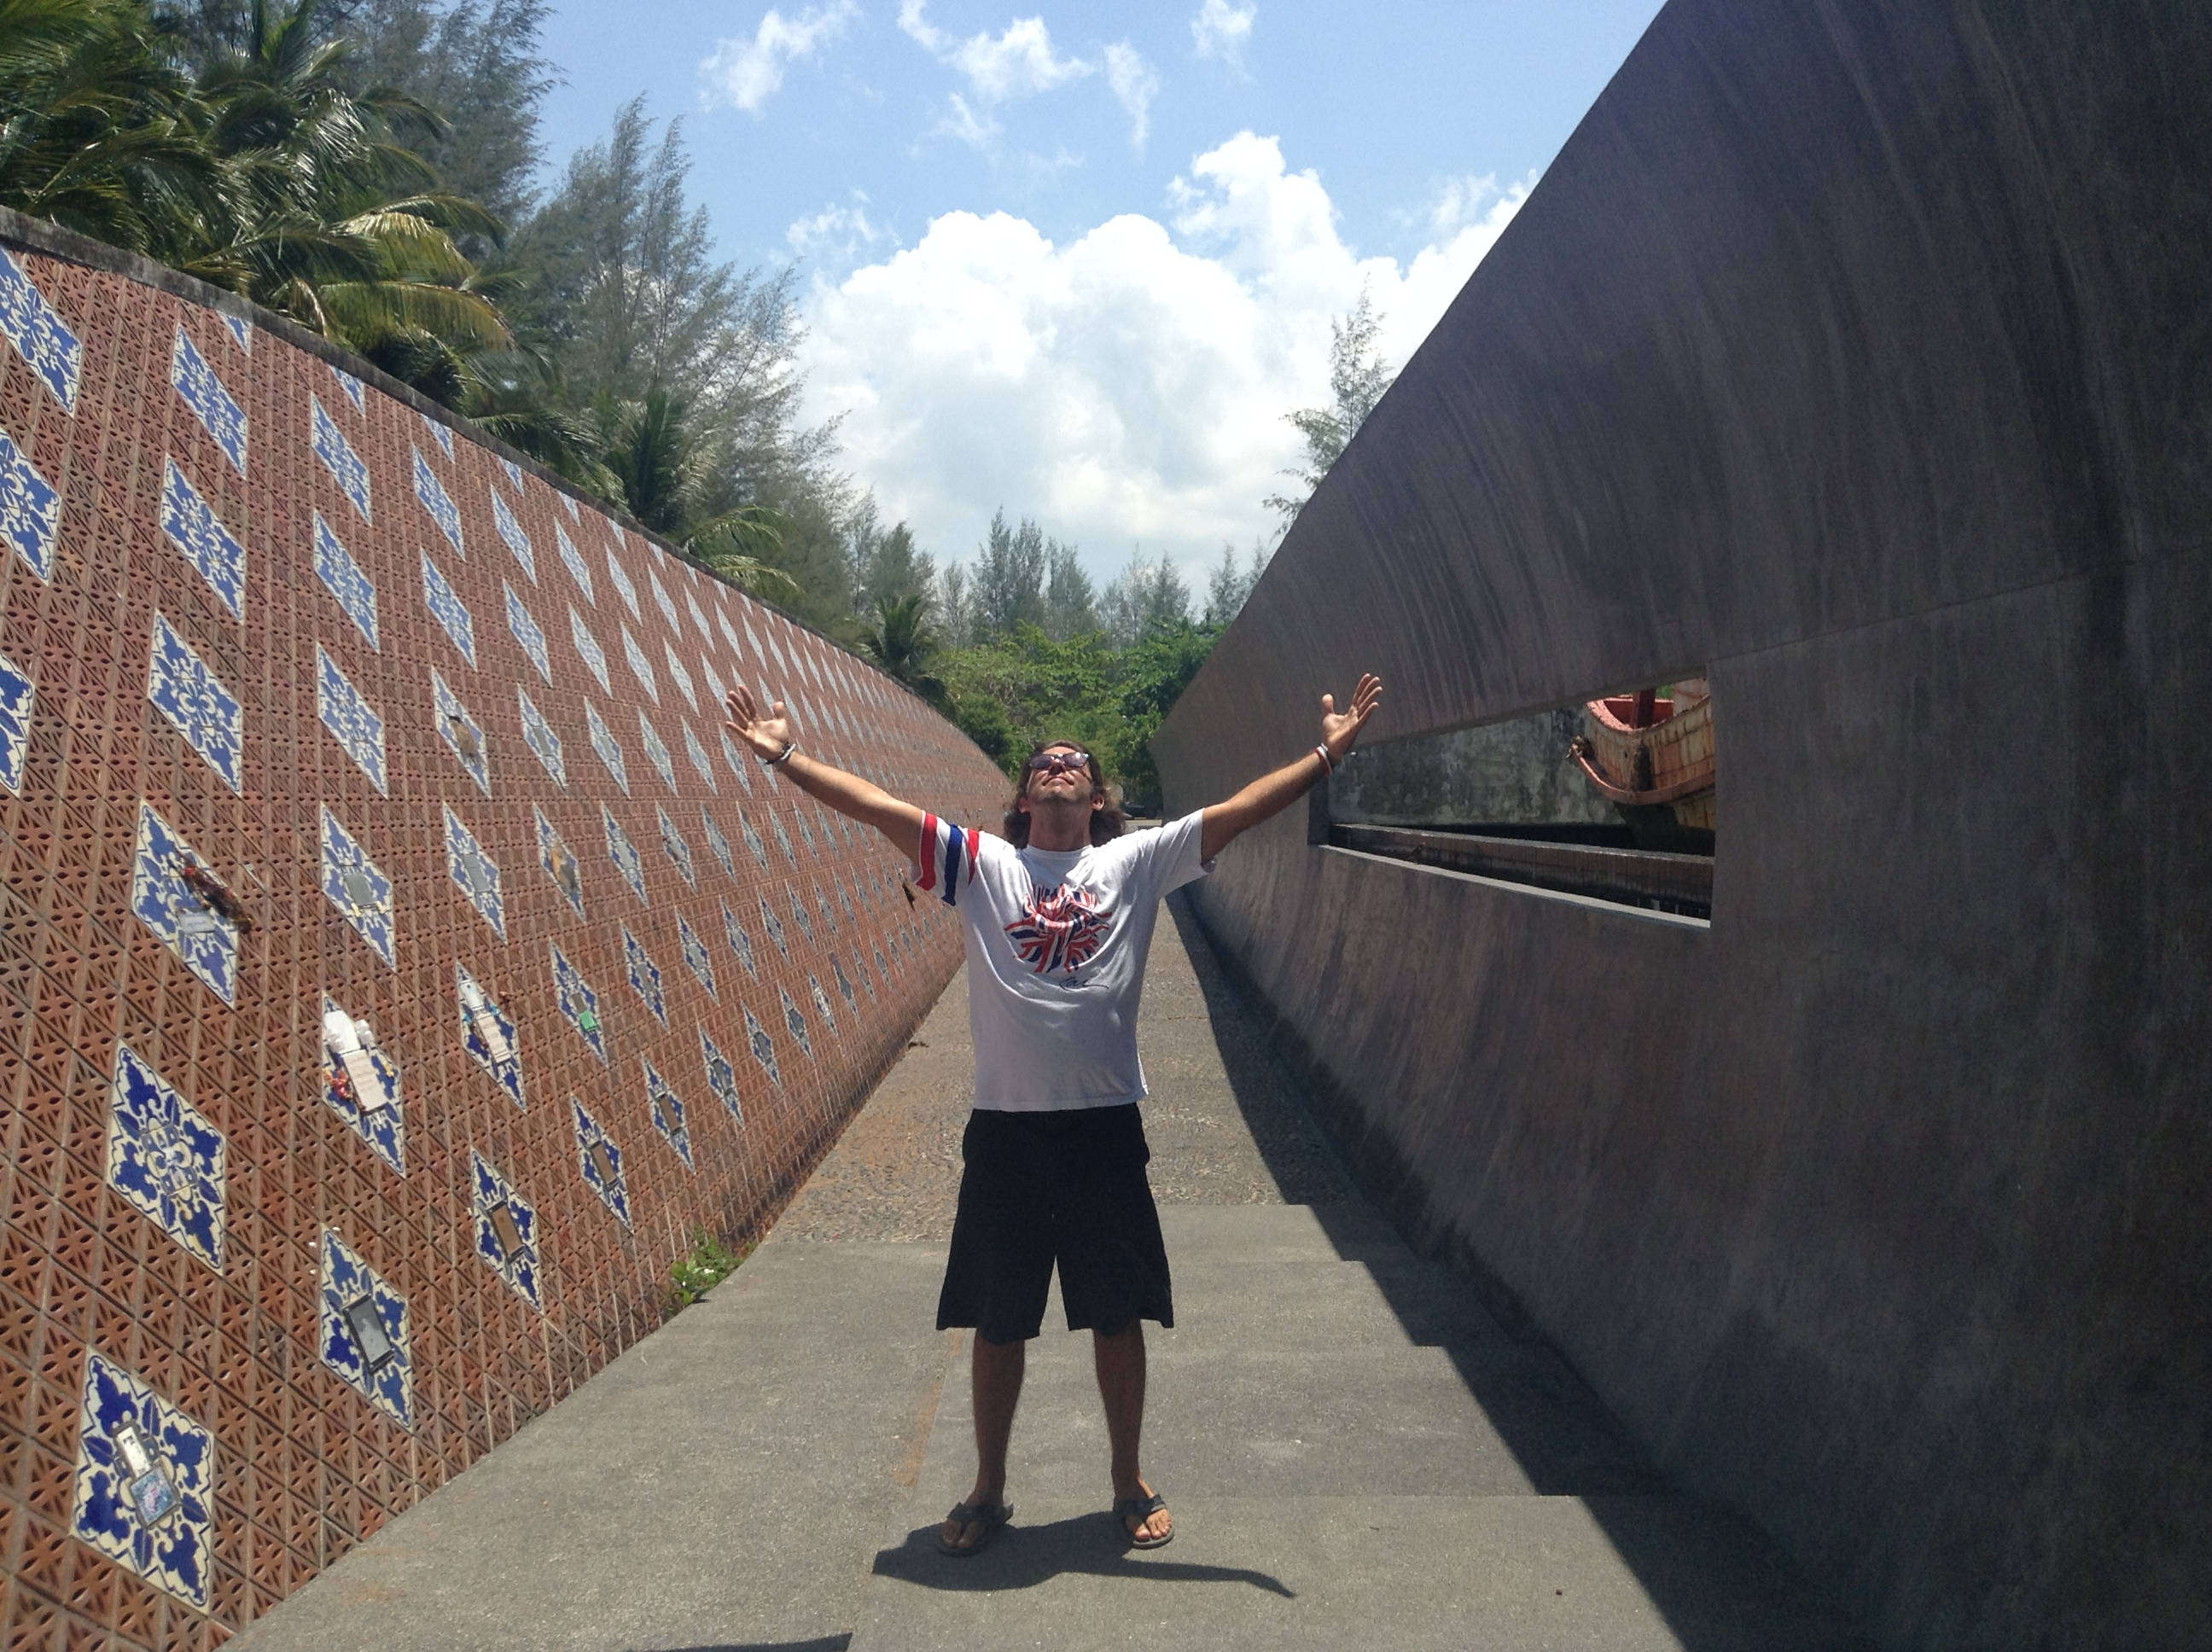 Me, at the Ban Nam Khem Tsunami Memorial in rural Phangnga Province, Thailand